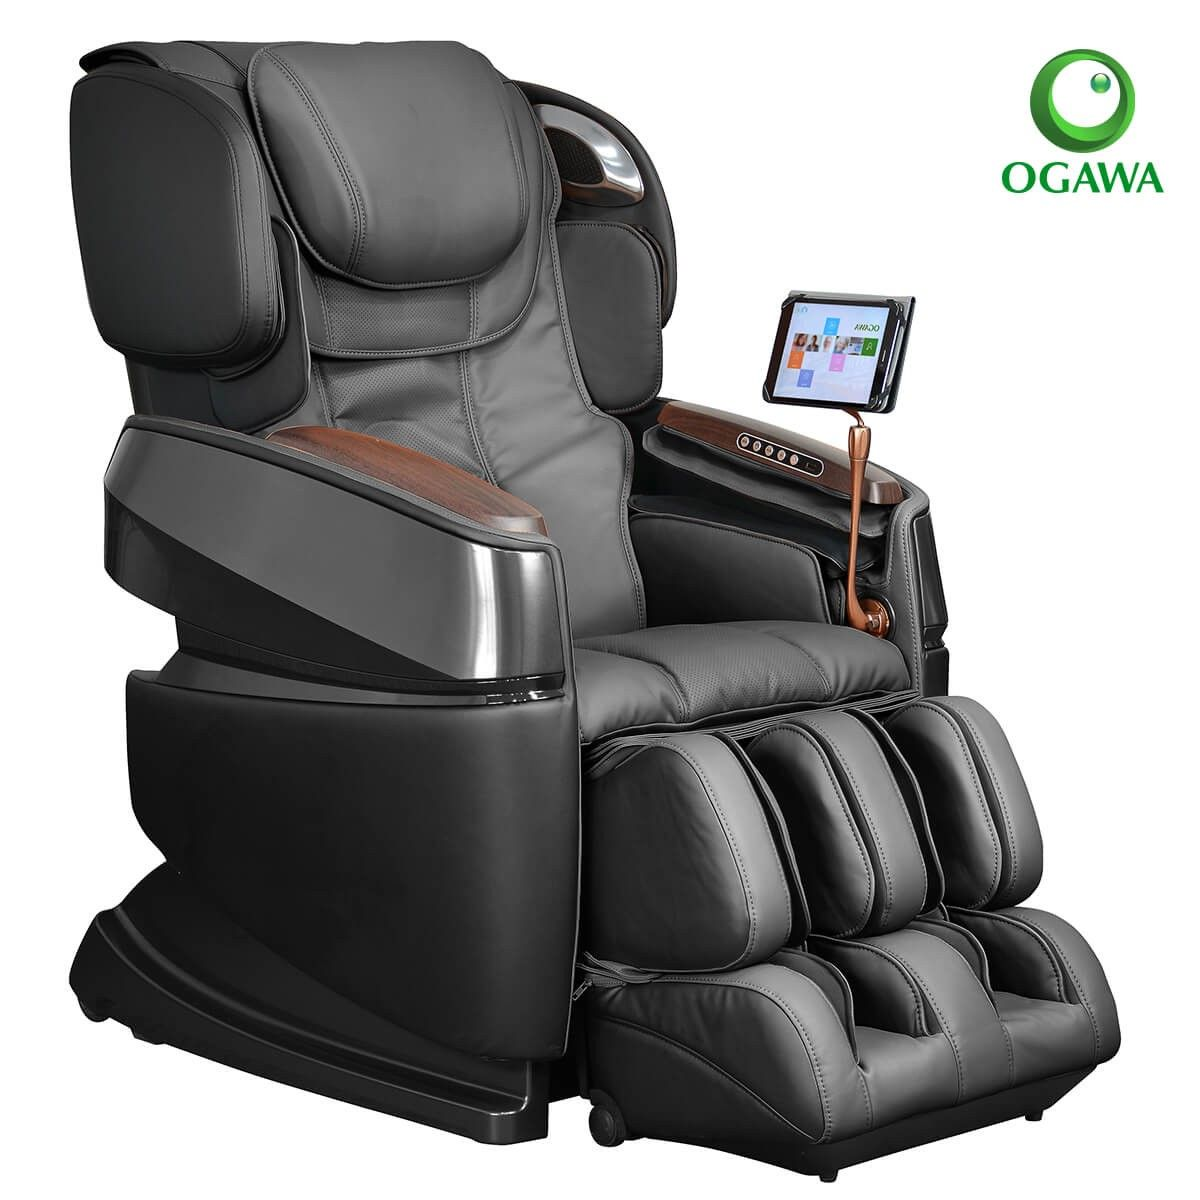 Ogawa Smart 3D Massage Chair Massage chair, Chairs for